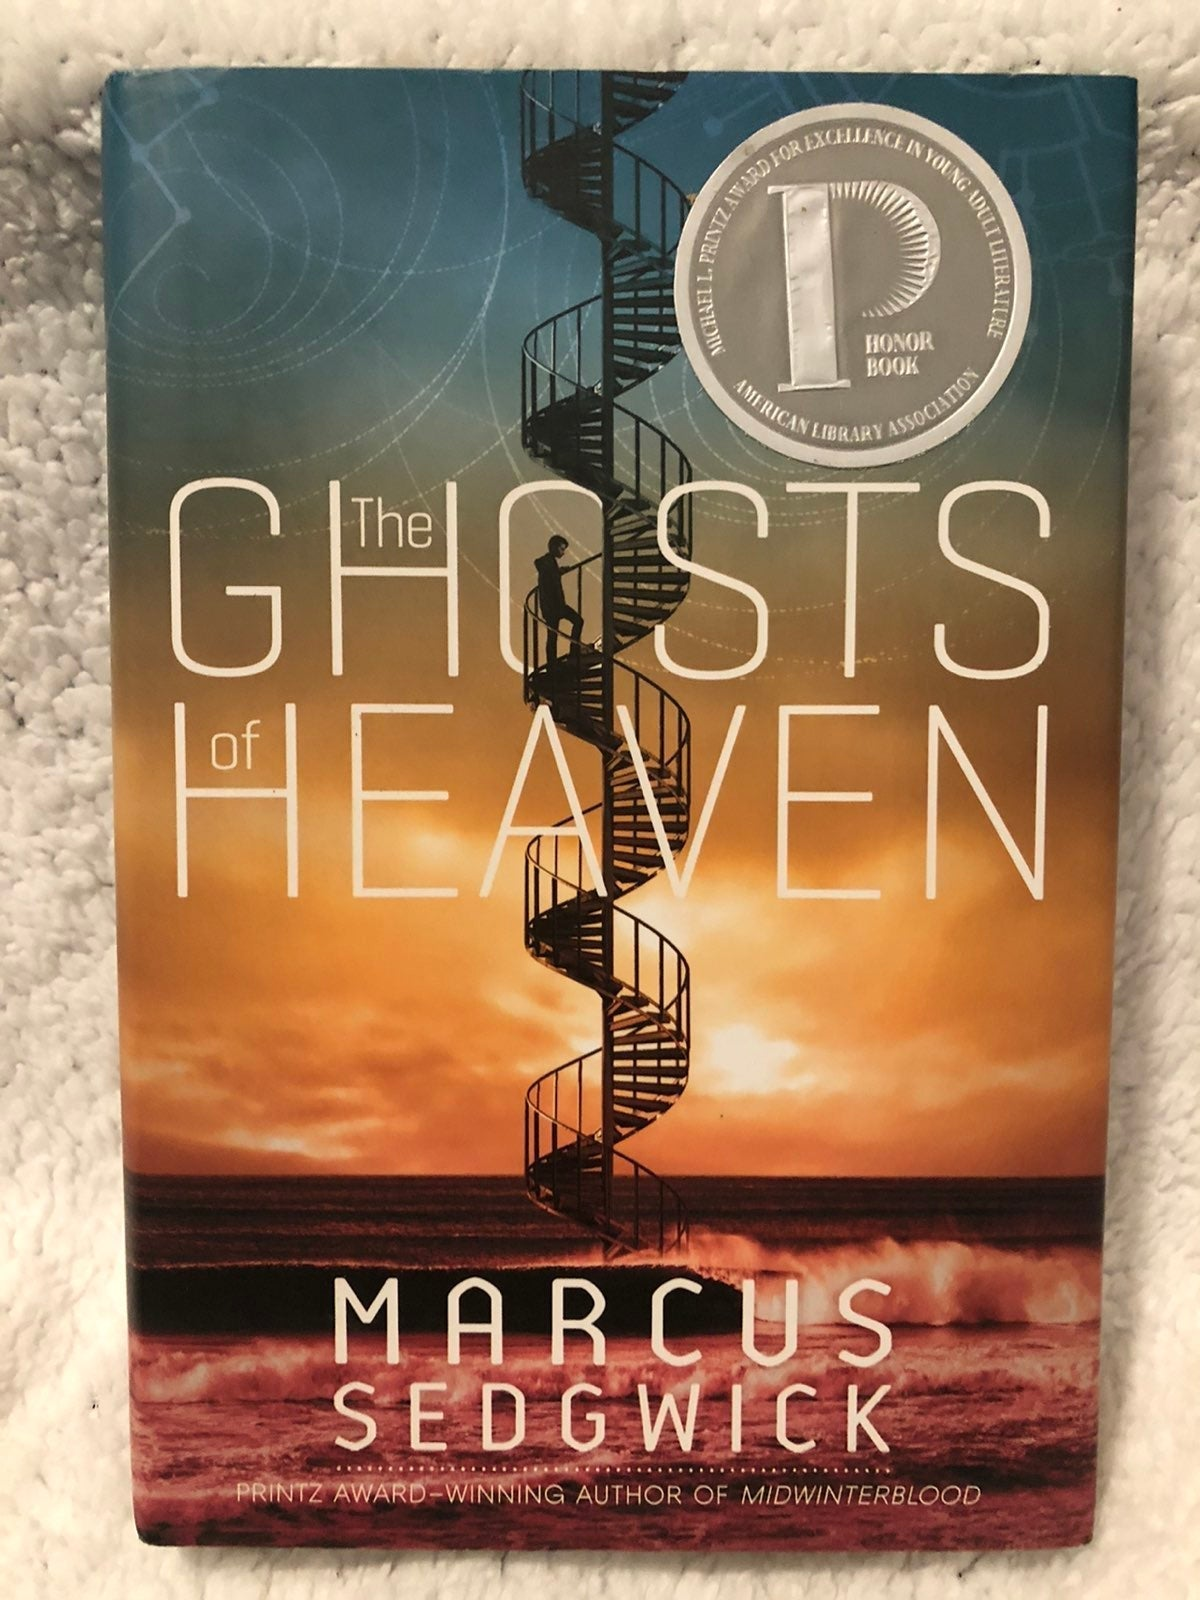 Signed The Ghosts of Heaven by Marcus